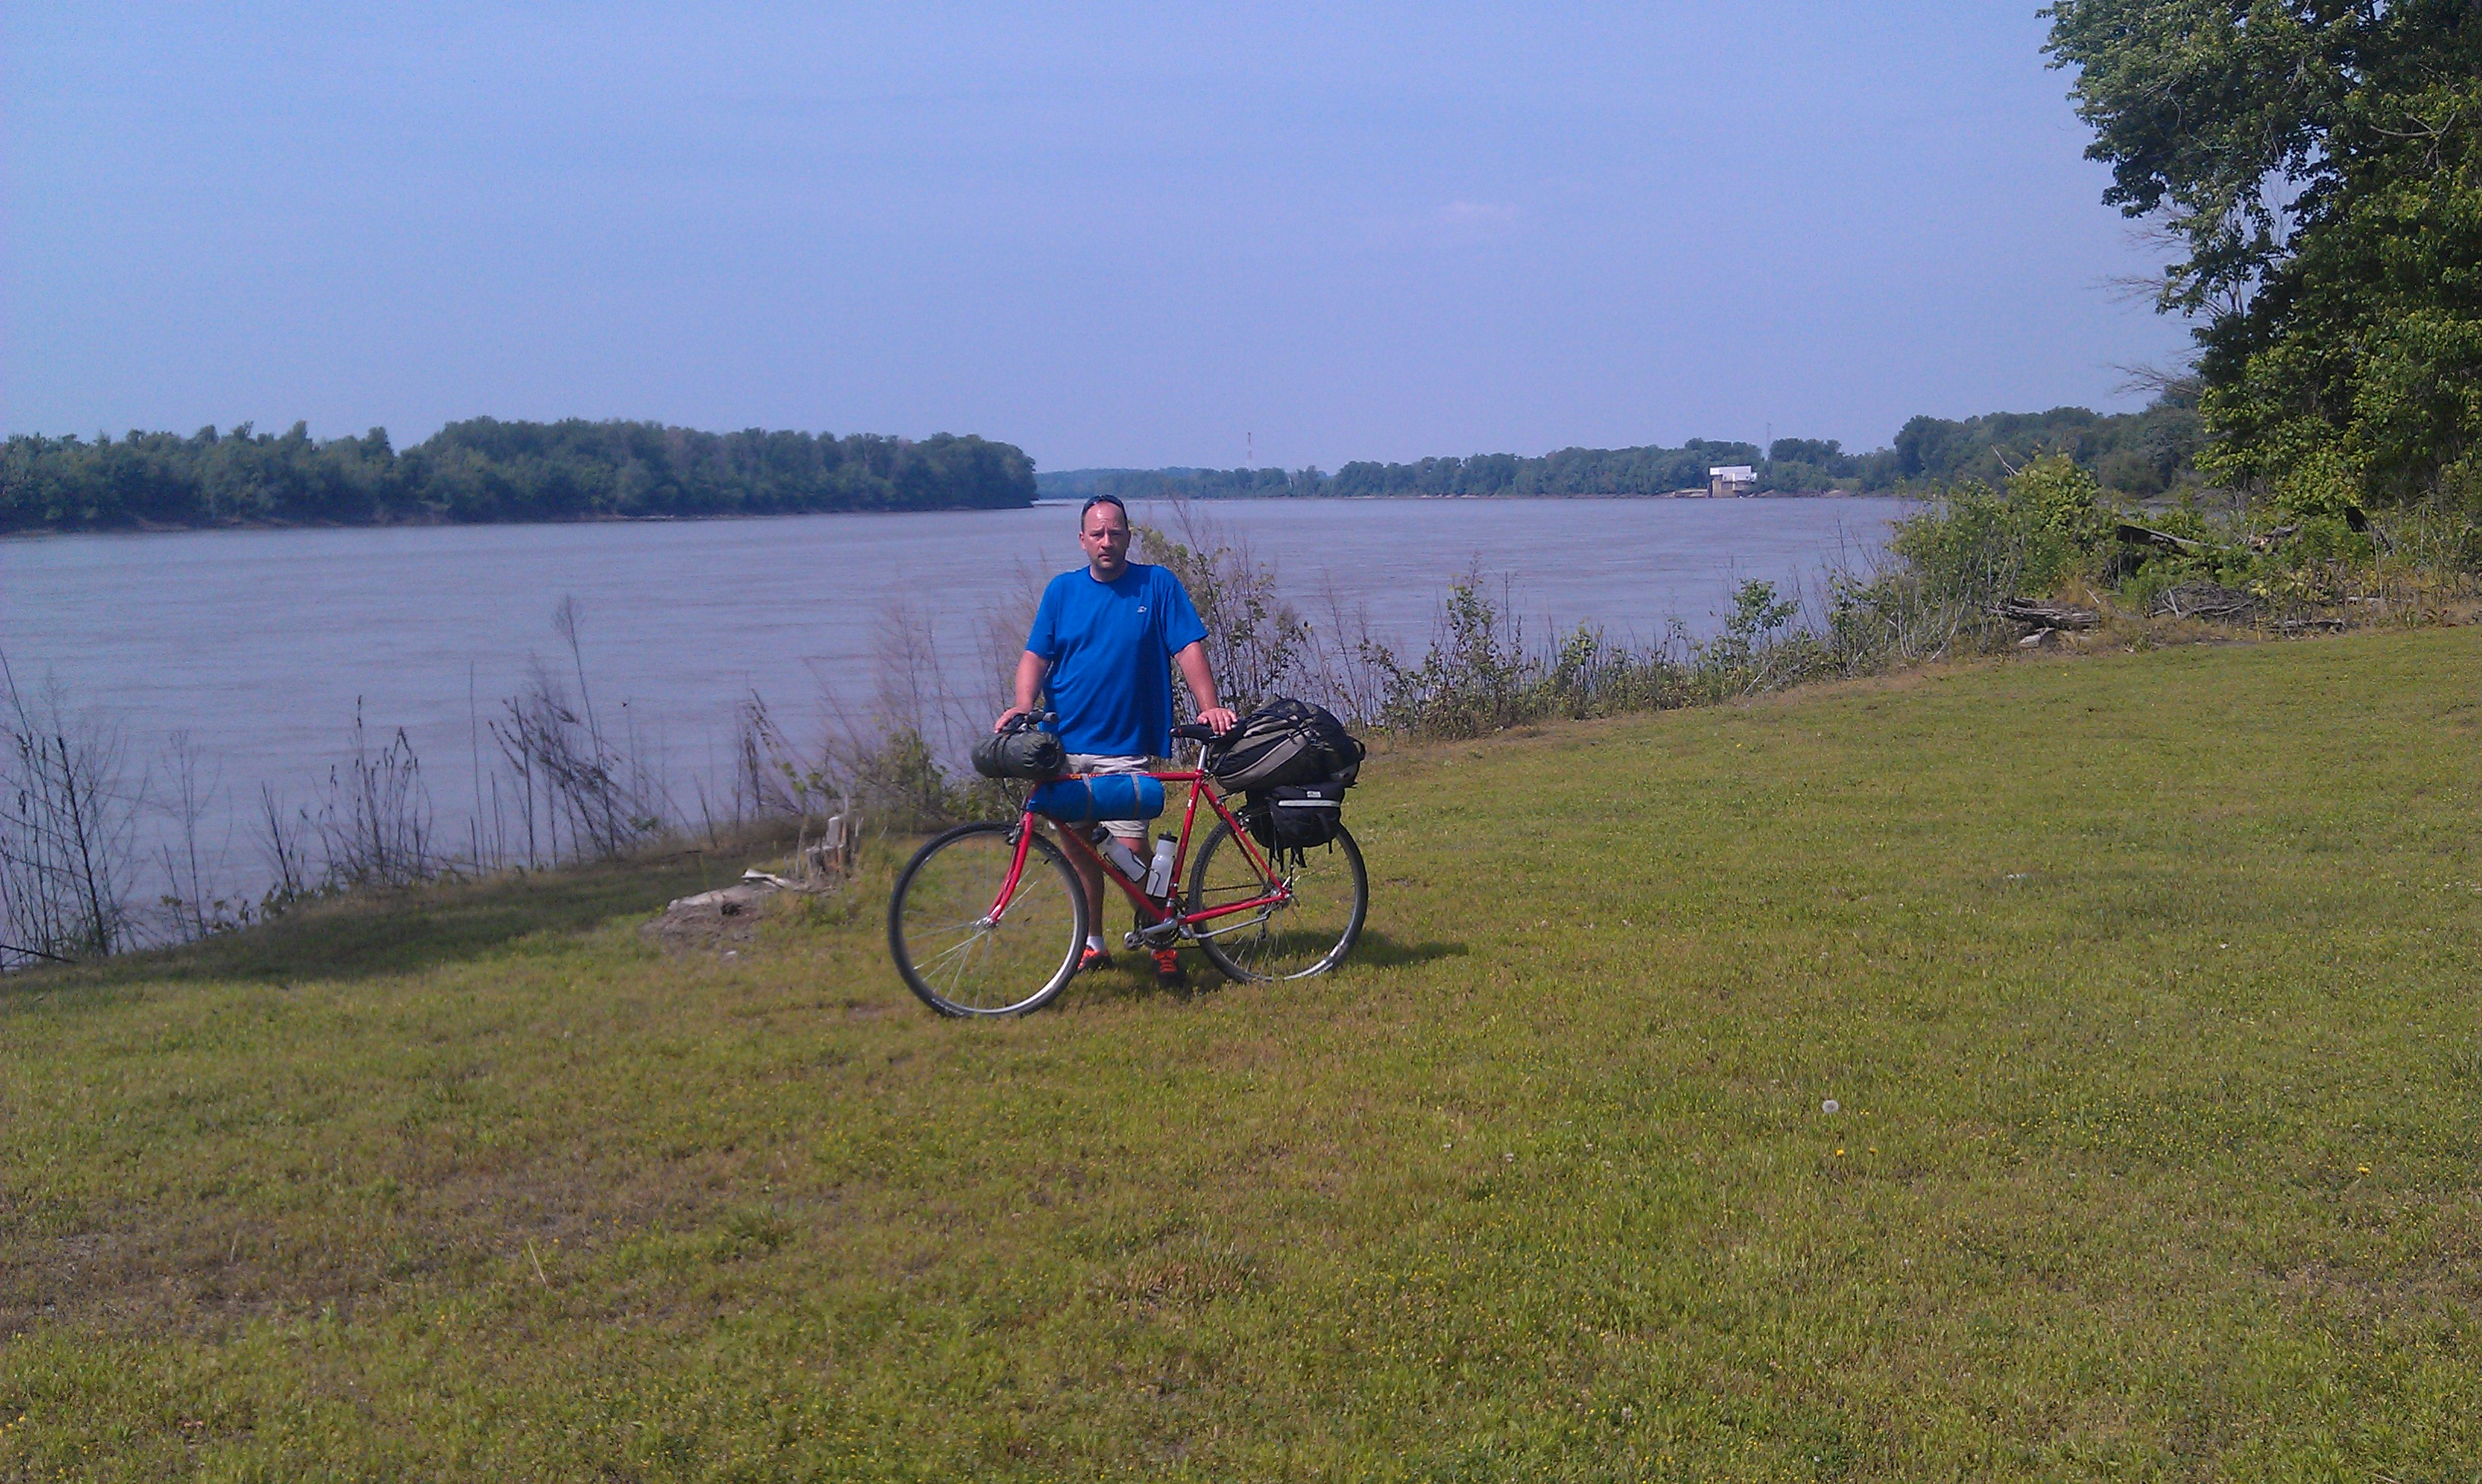 Me and My Gear at the River & bikepacking.net u003e Eastern USA u003e By Gravel And Rail u2014 A Ride on the ...